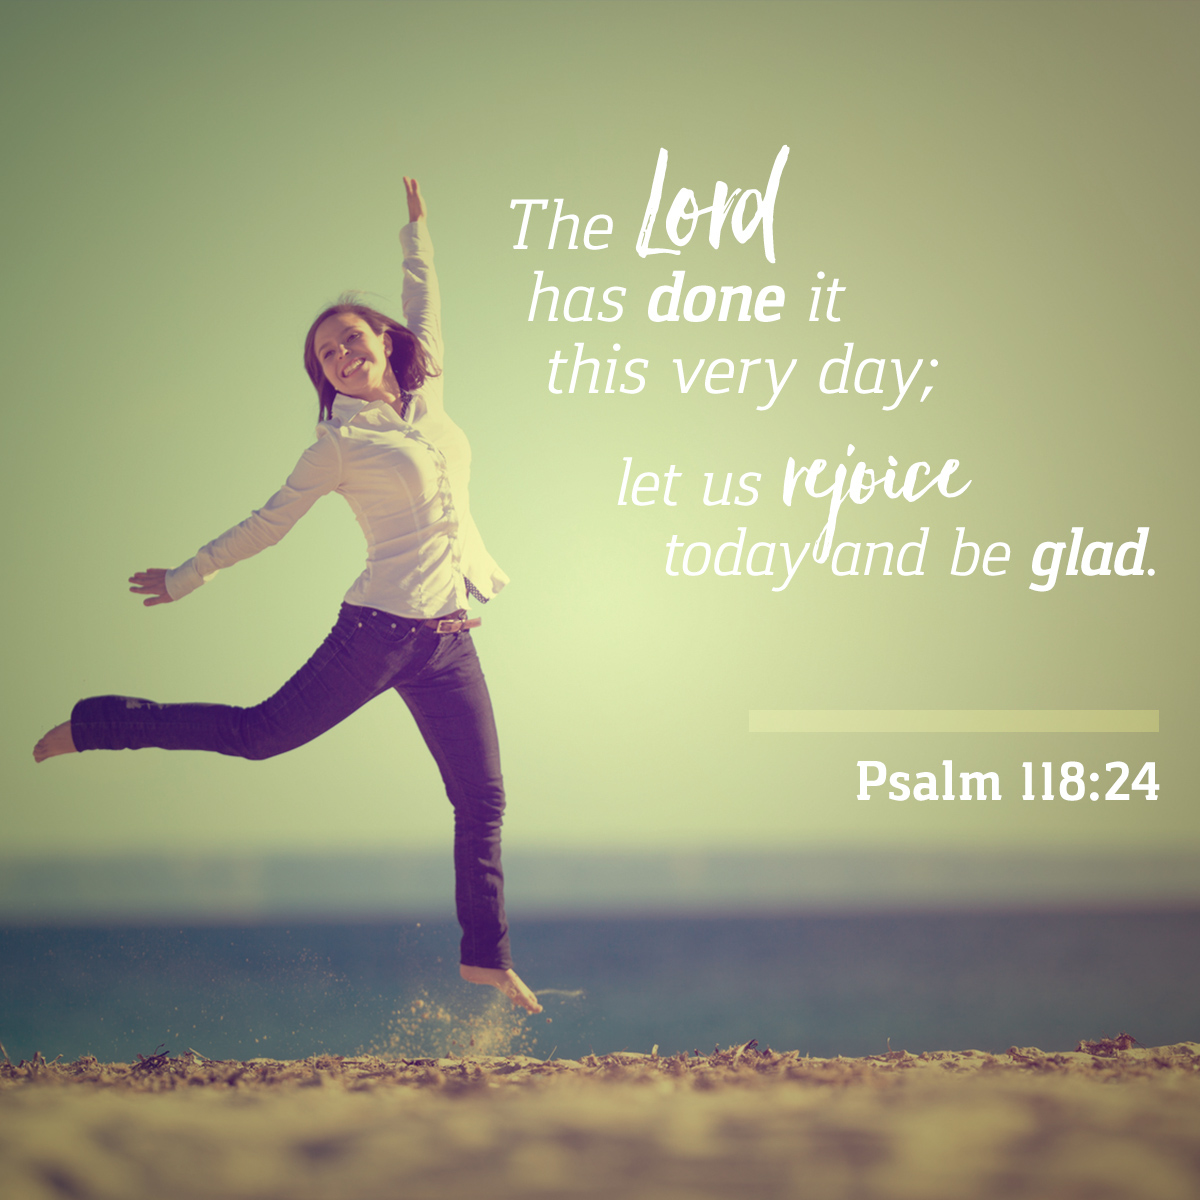 Psalm 118:24 - Daily Verse